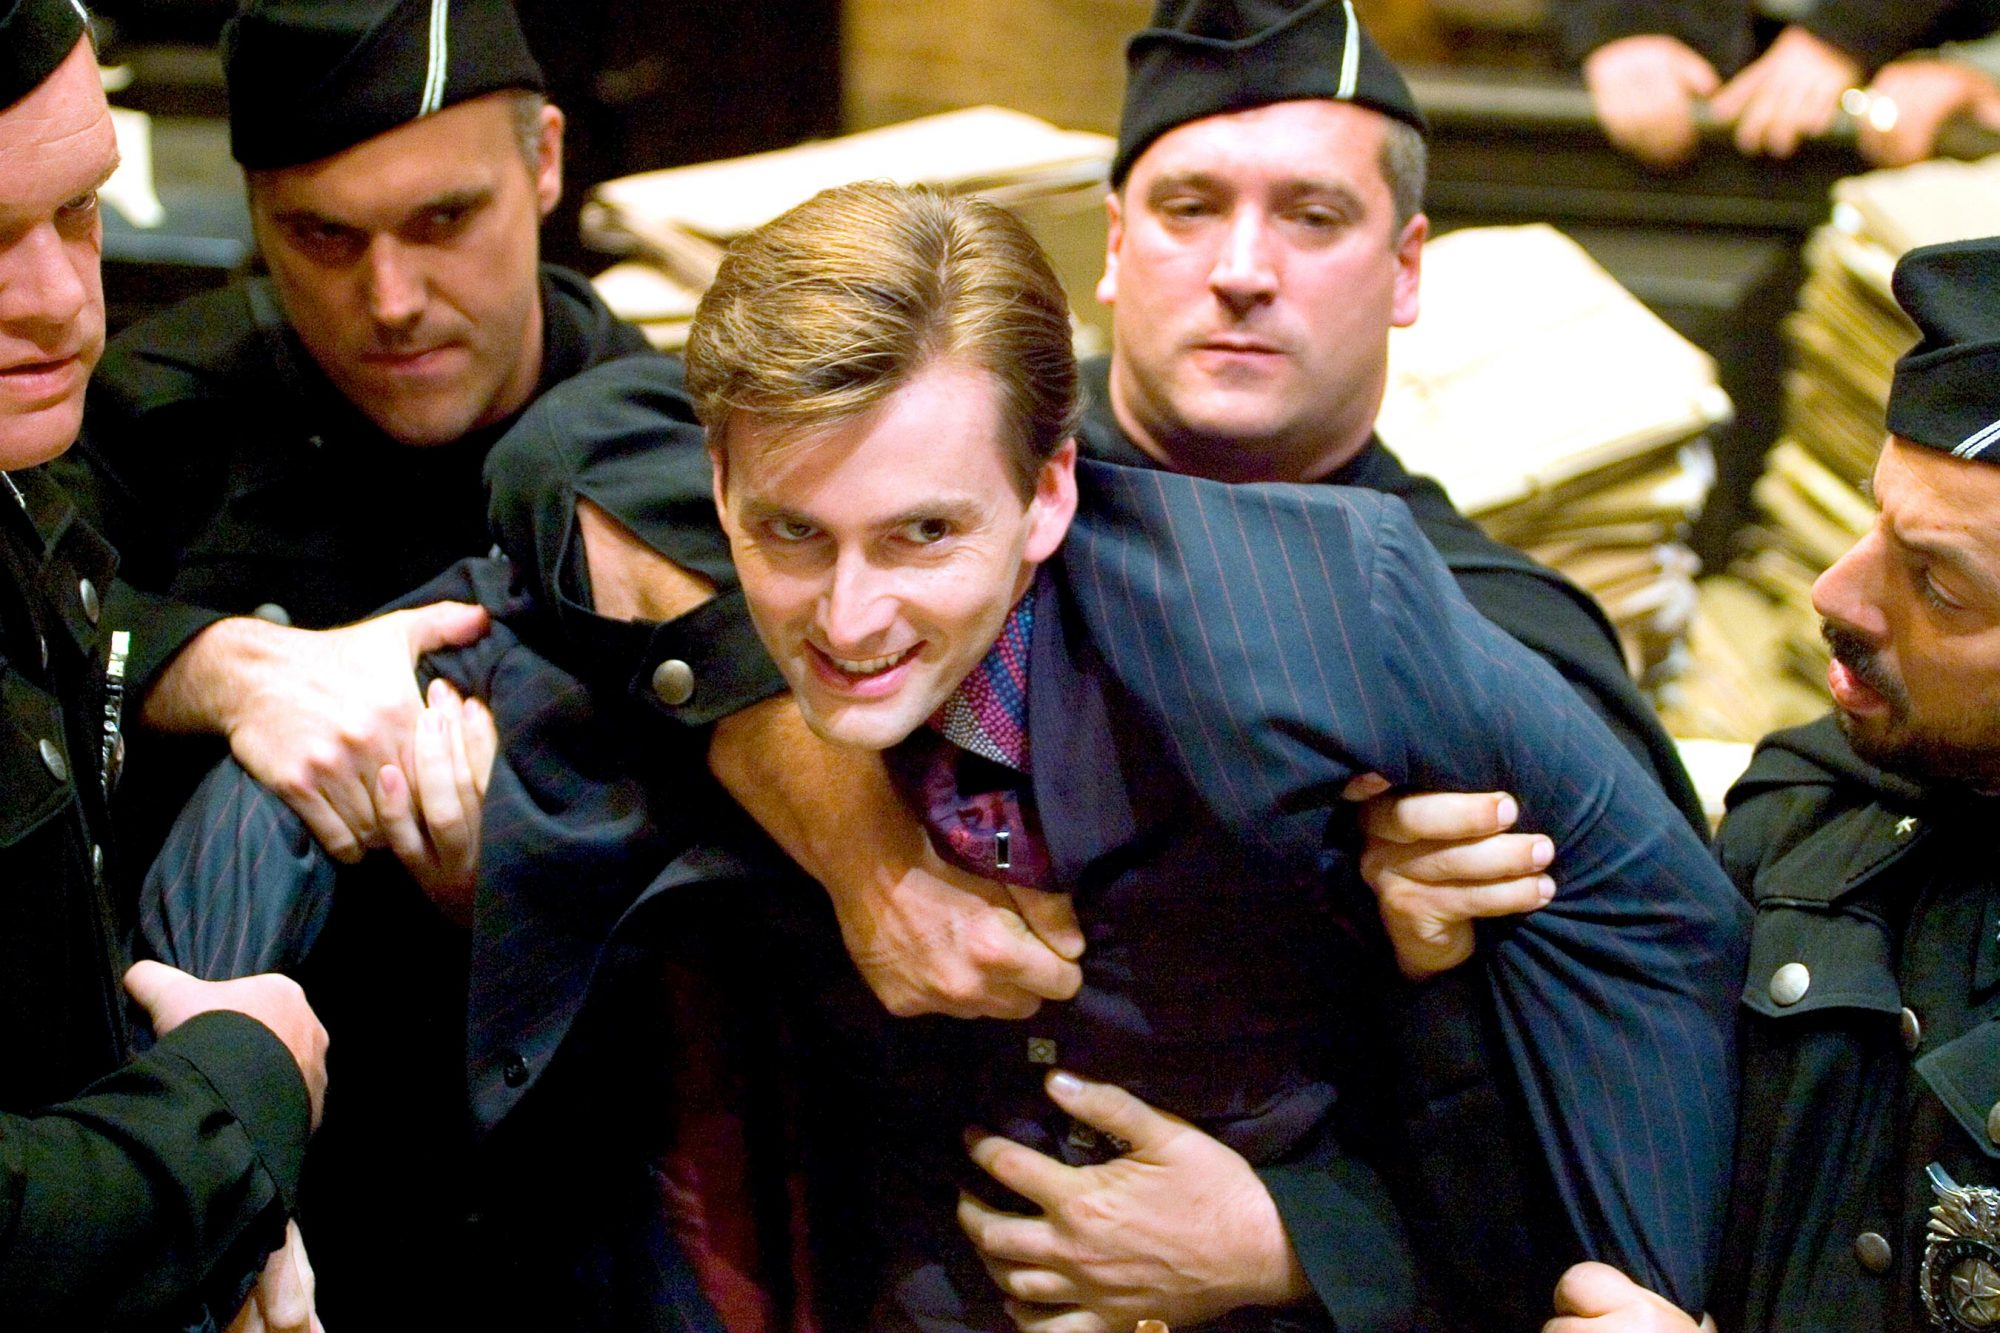 HARRY POTTER AND THE GOBLET OF FIRE, David Tennant, 2005, (c) Warner Brothers / courtesy Everett Col